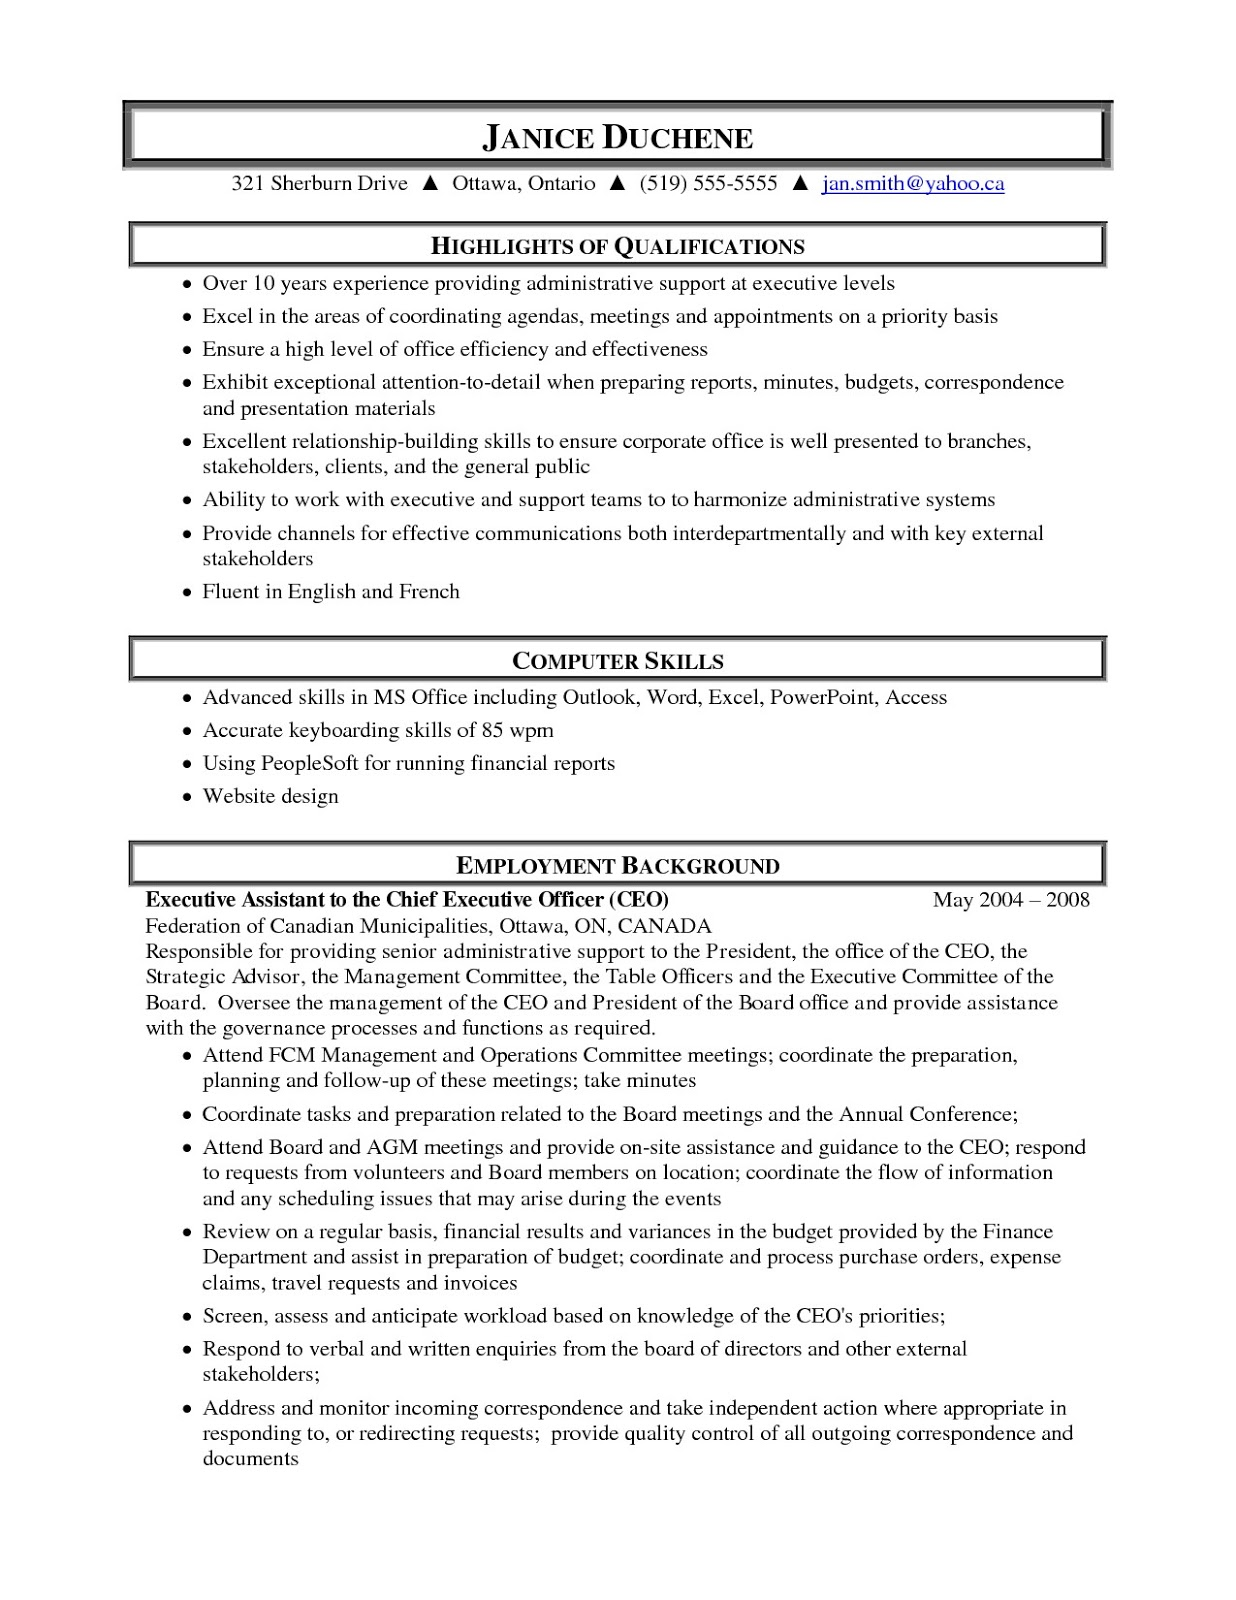 Office Assistant Resume Skills 2019 Resume Templates Office Assistant, office assistant resume skills, office assistant resume skills list, medical office assistant resume skills, office assistant skills resume sample, skills for an office assistant resume, skills and abilities for office assistant resume,